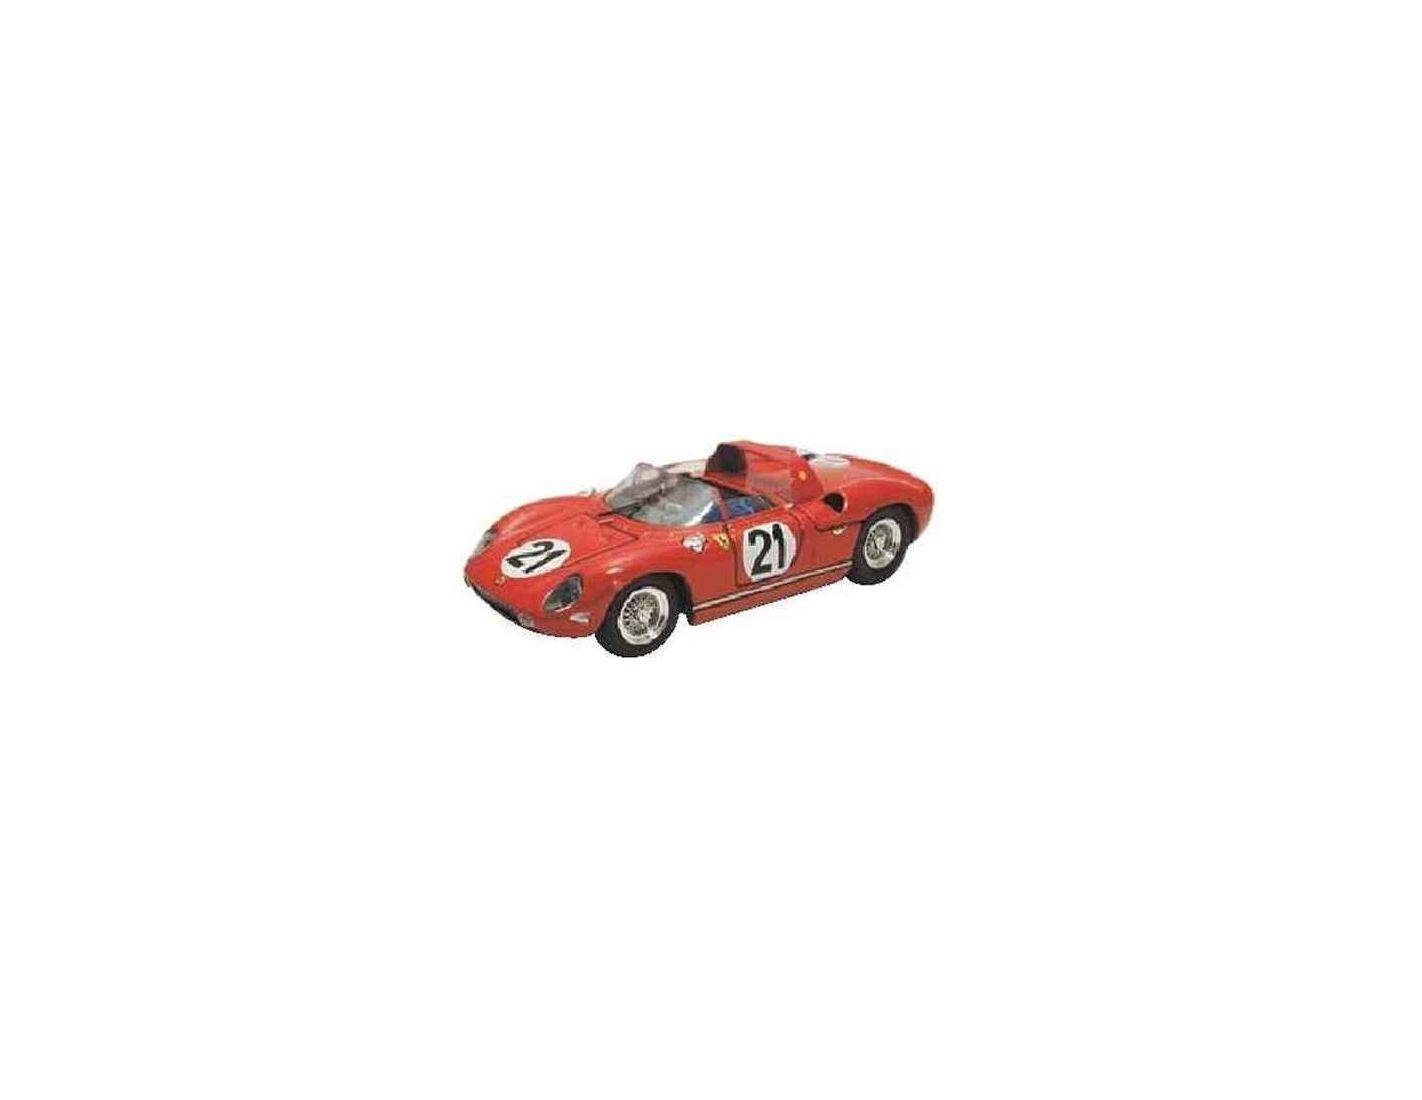 Art Model AM0139 FERRARI 250 P N.21 WINNER LM 1963 BANDINI-SCARFIOTTI 1:43 Modellino